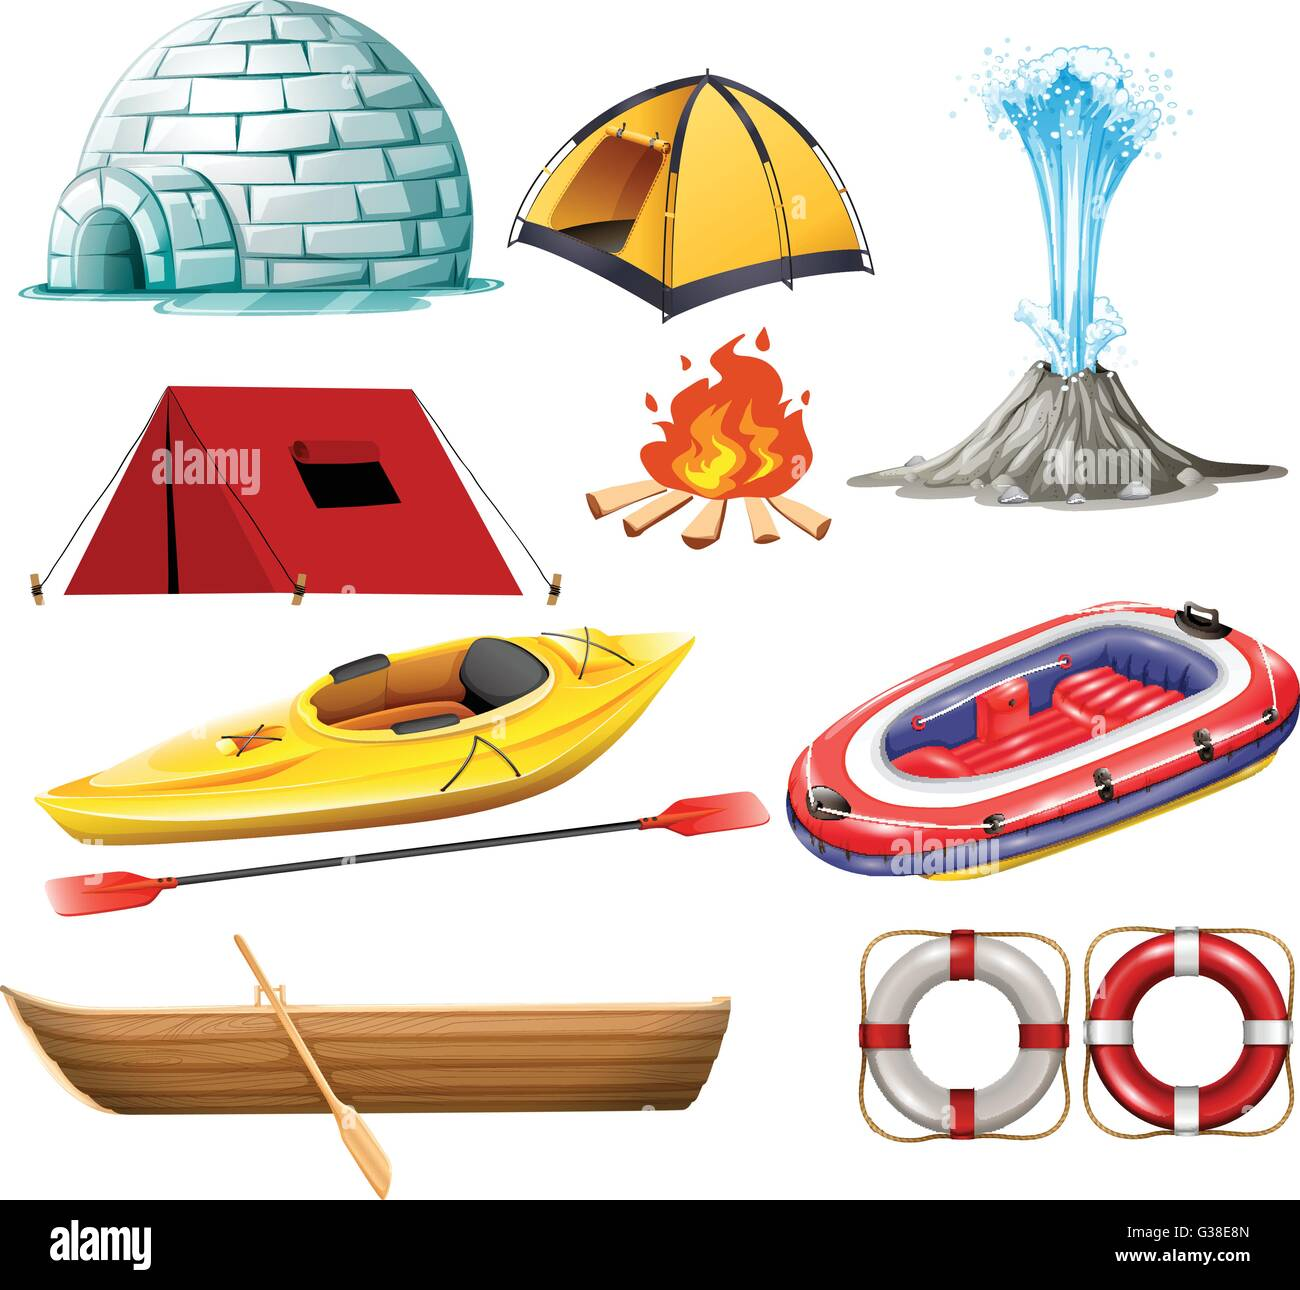 Different objects for camping and hiking illustration - Stock Image